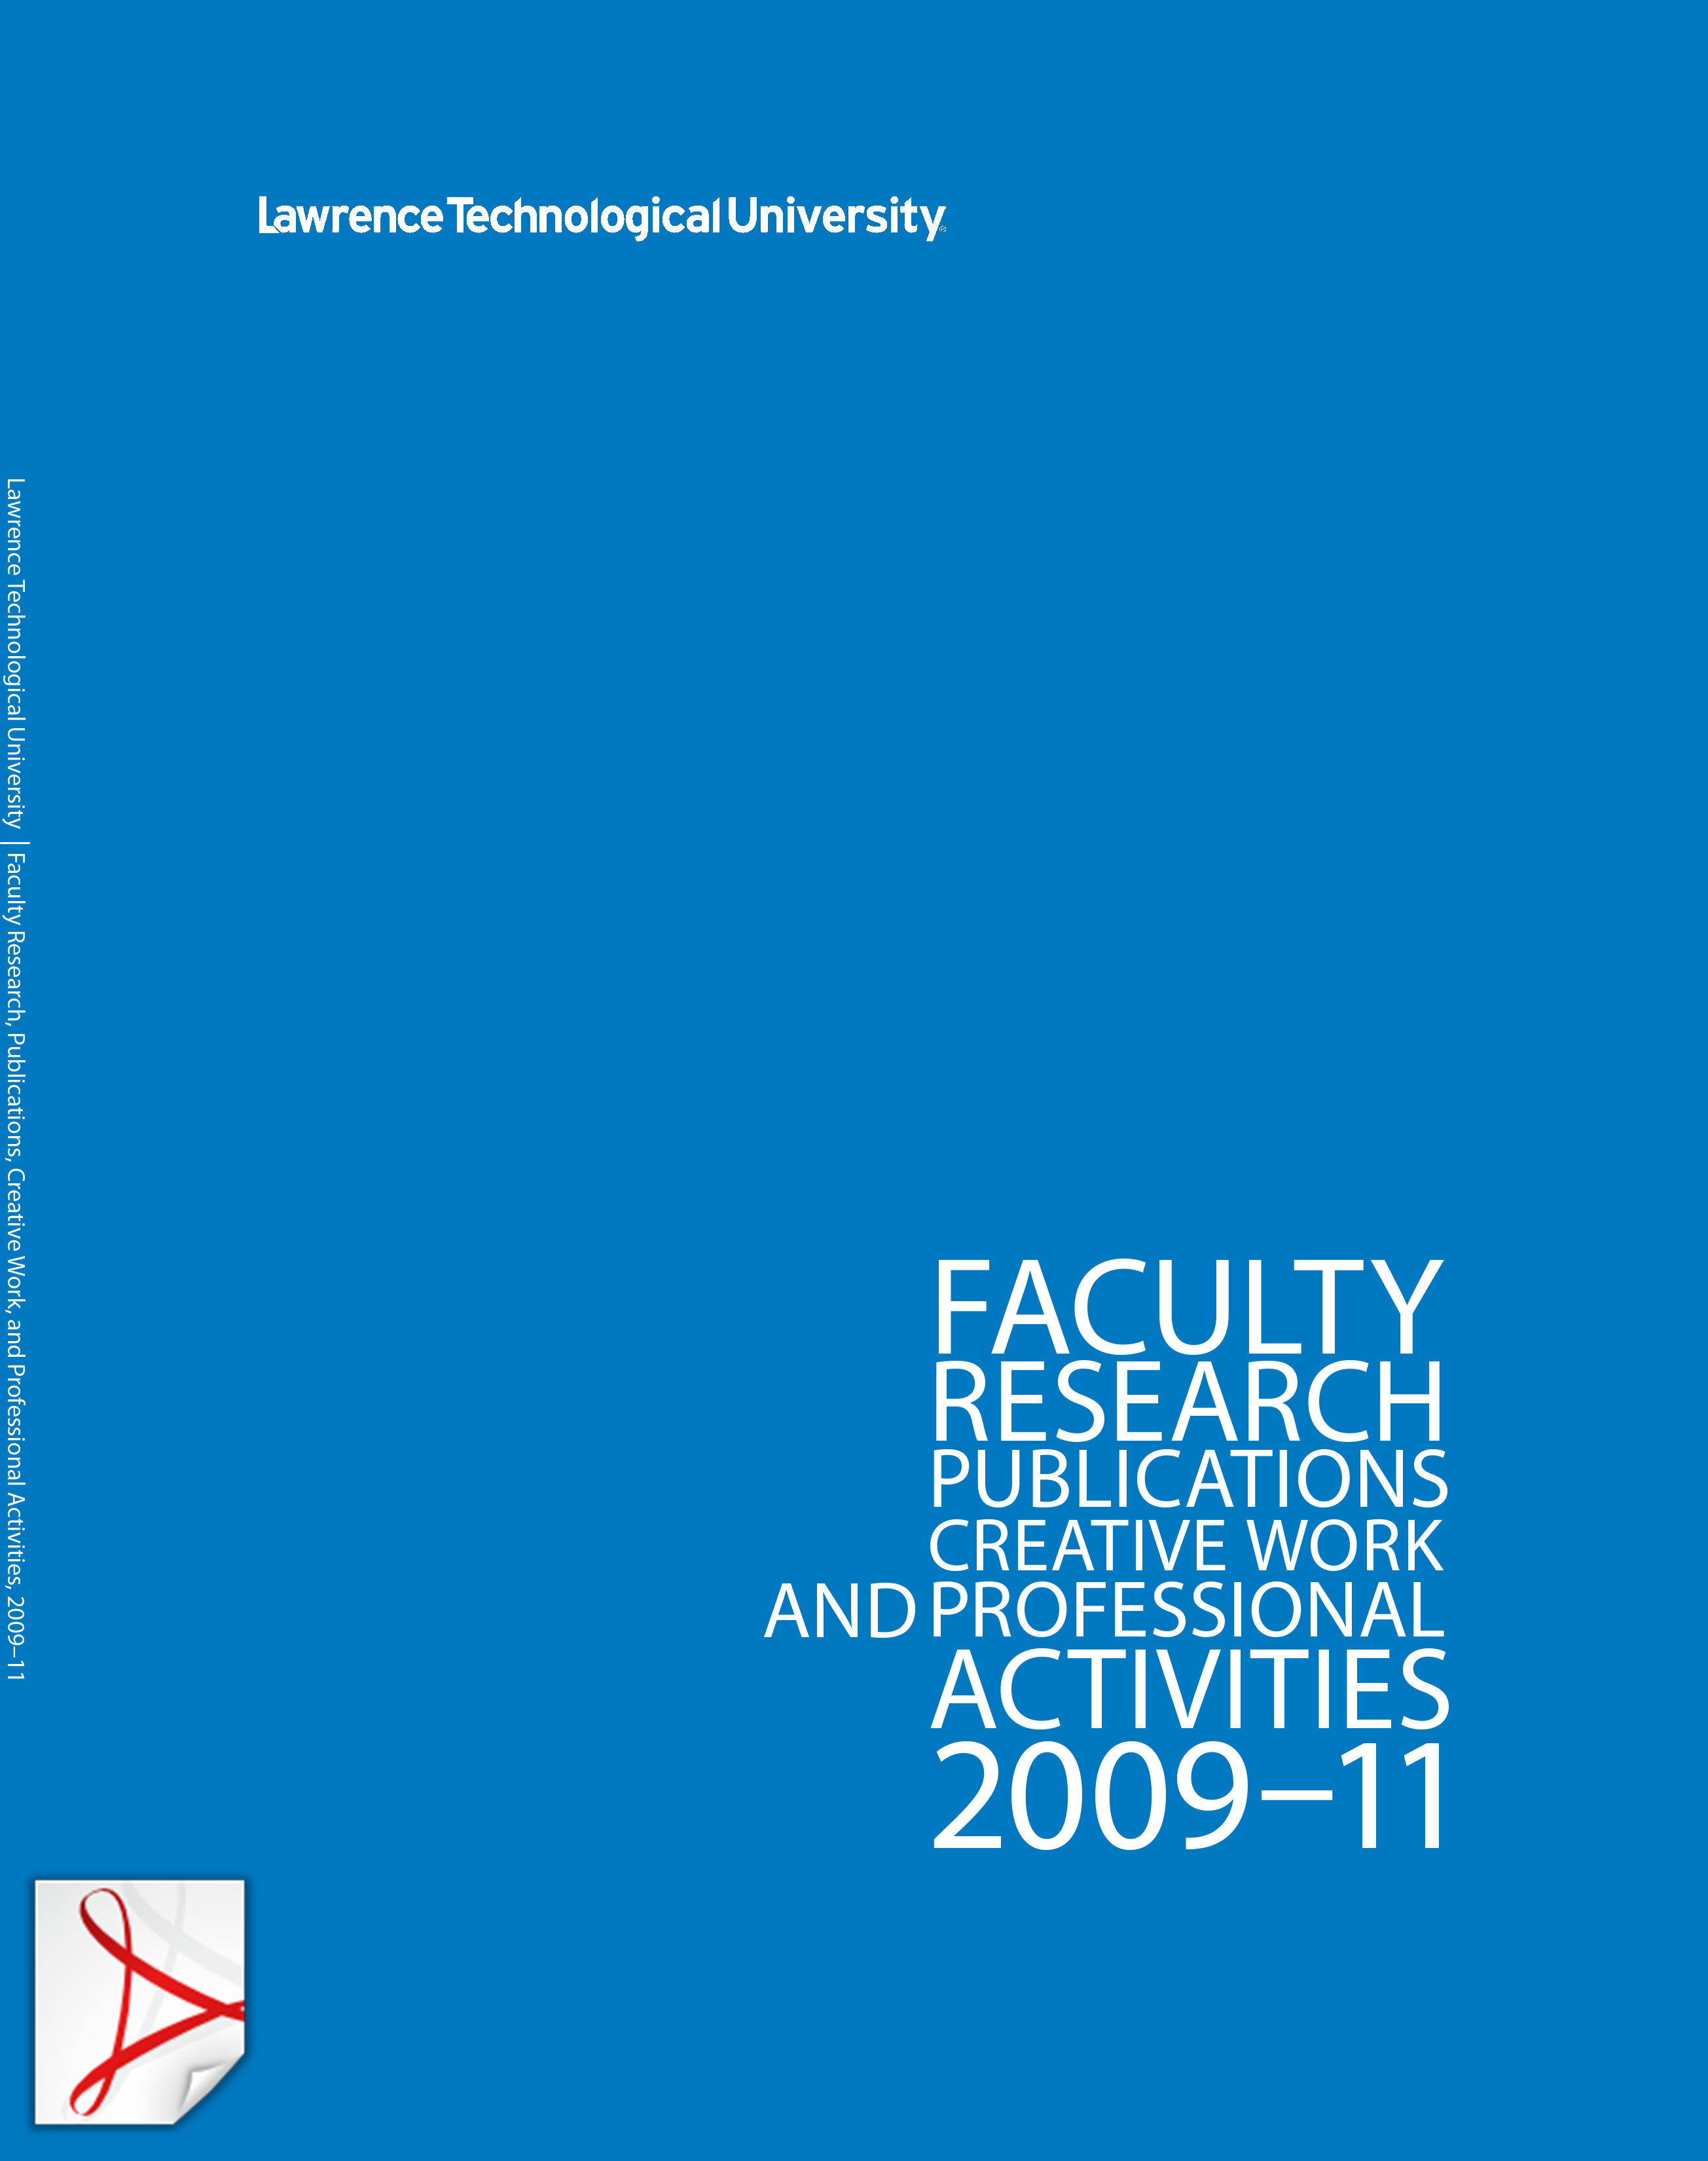 faculty-research-publications-book-cover.jpg